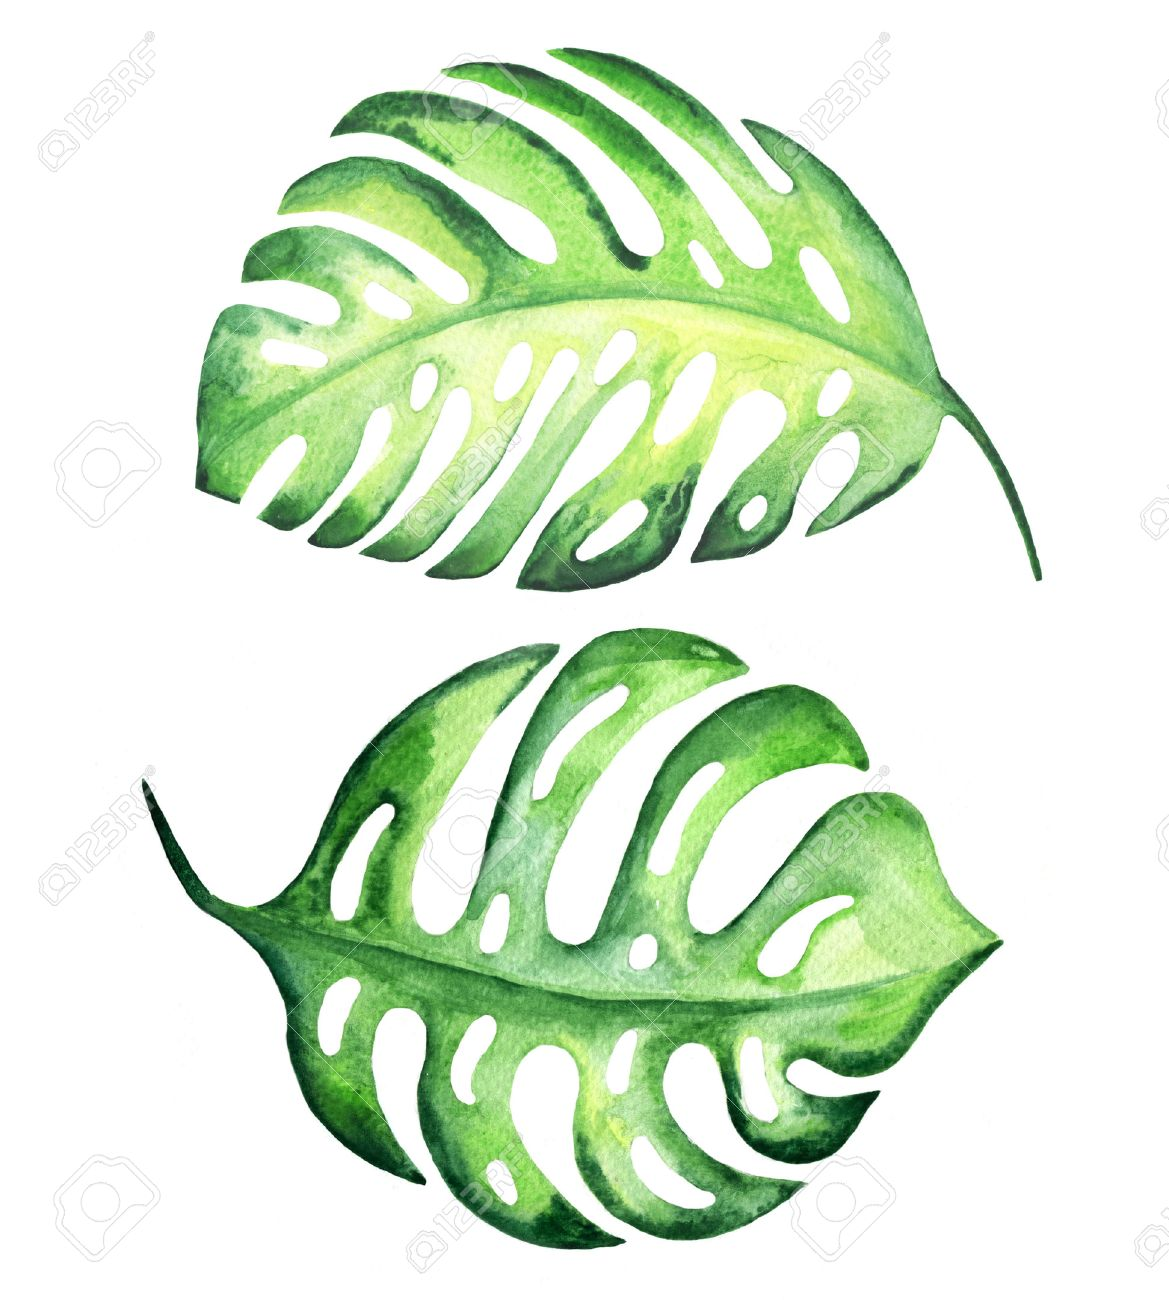 Tropical Exotic Leaves Monstera Watercolor Illustration Stock Photo Picture And Royalty Free Image Image 33036019 About 1% of these are aquatic plants. tropical exotic leaves monstera watercolor illustration